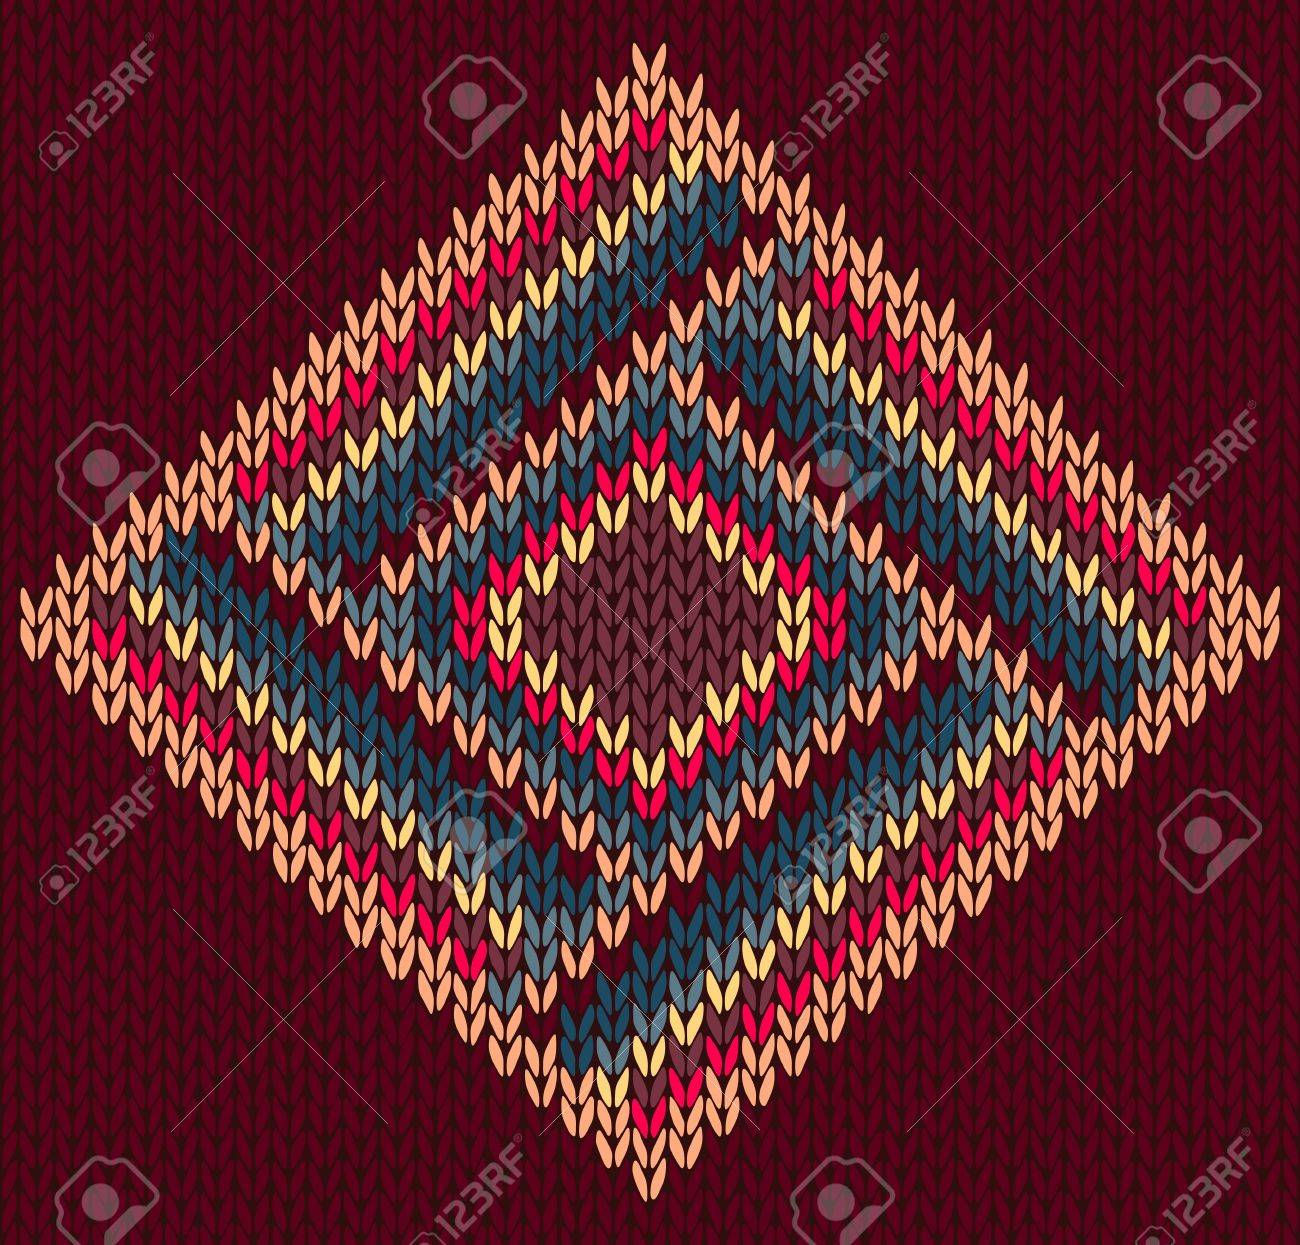 Style Seamless Brown Red Blue Yellow Color Knitted Pattern Stock Vector - 13509216